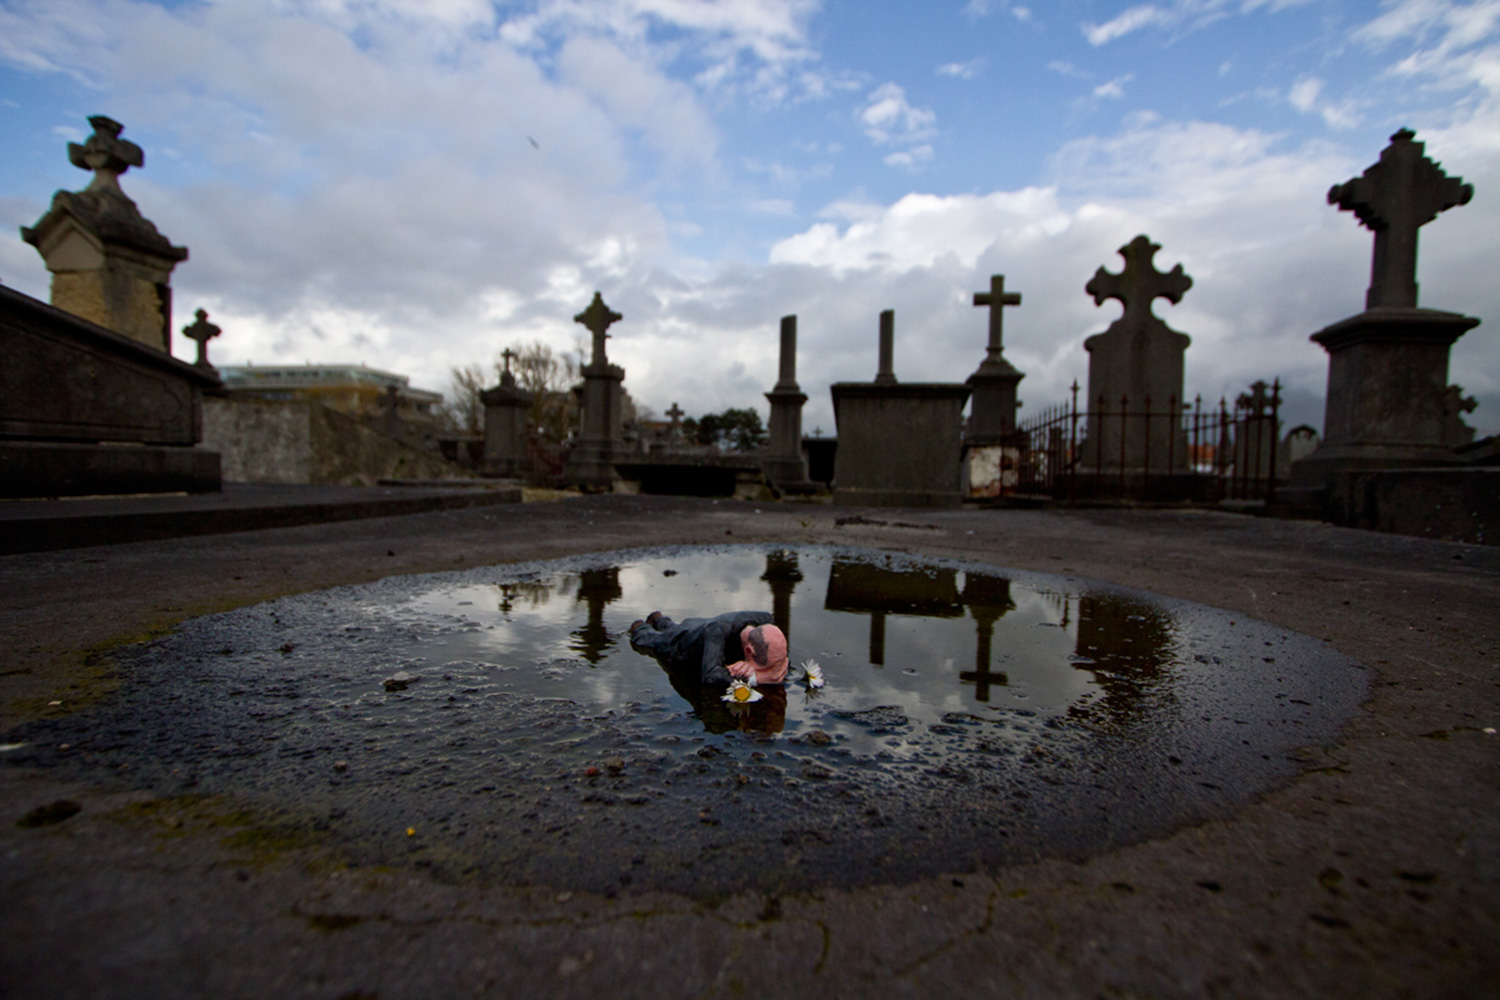 Isaac Cordal - graveyard, lying in puddle